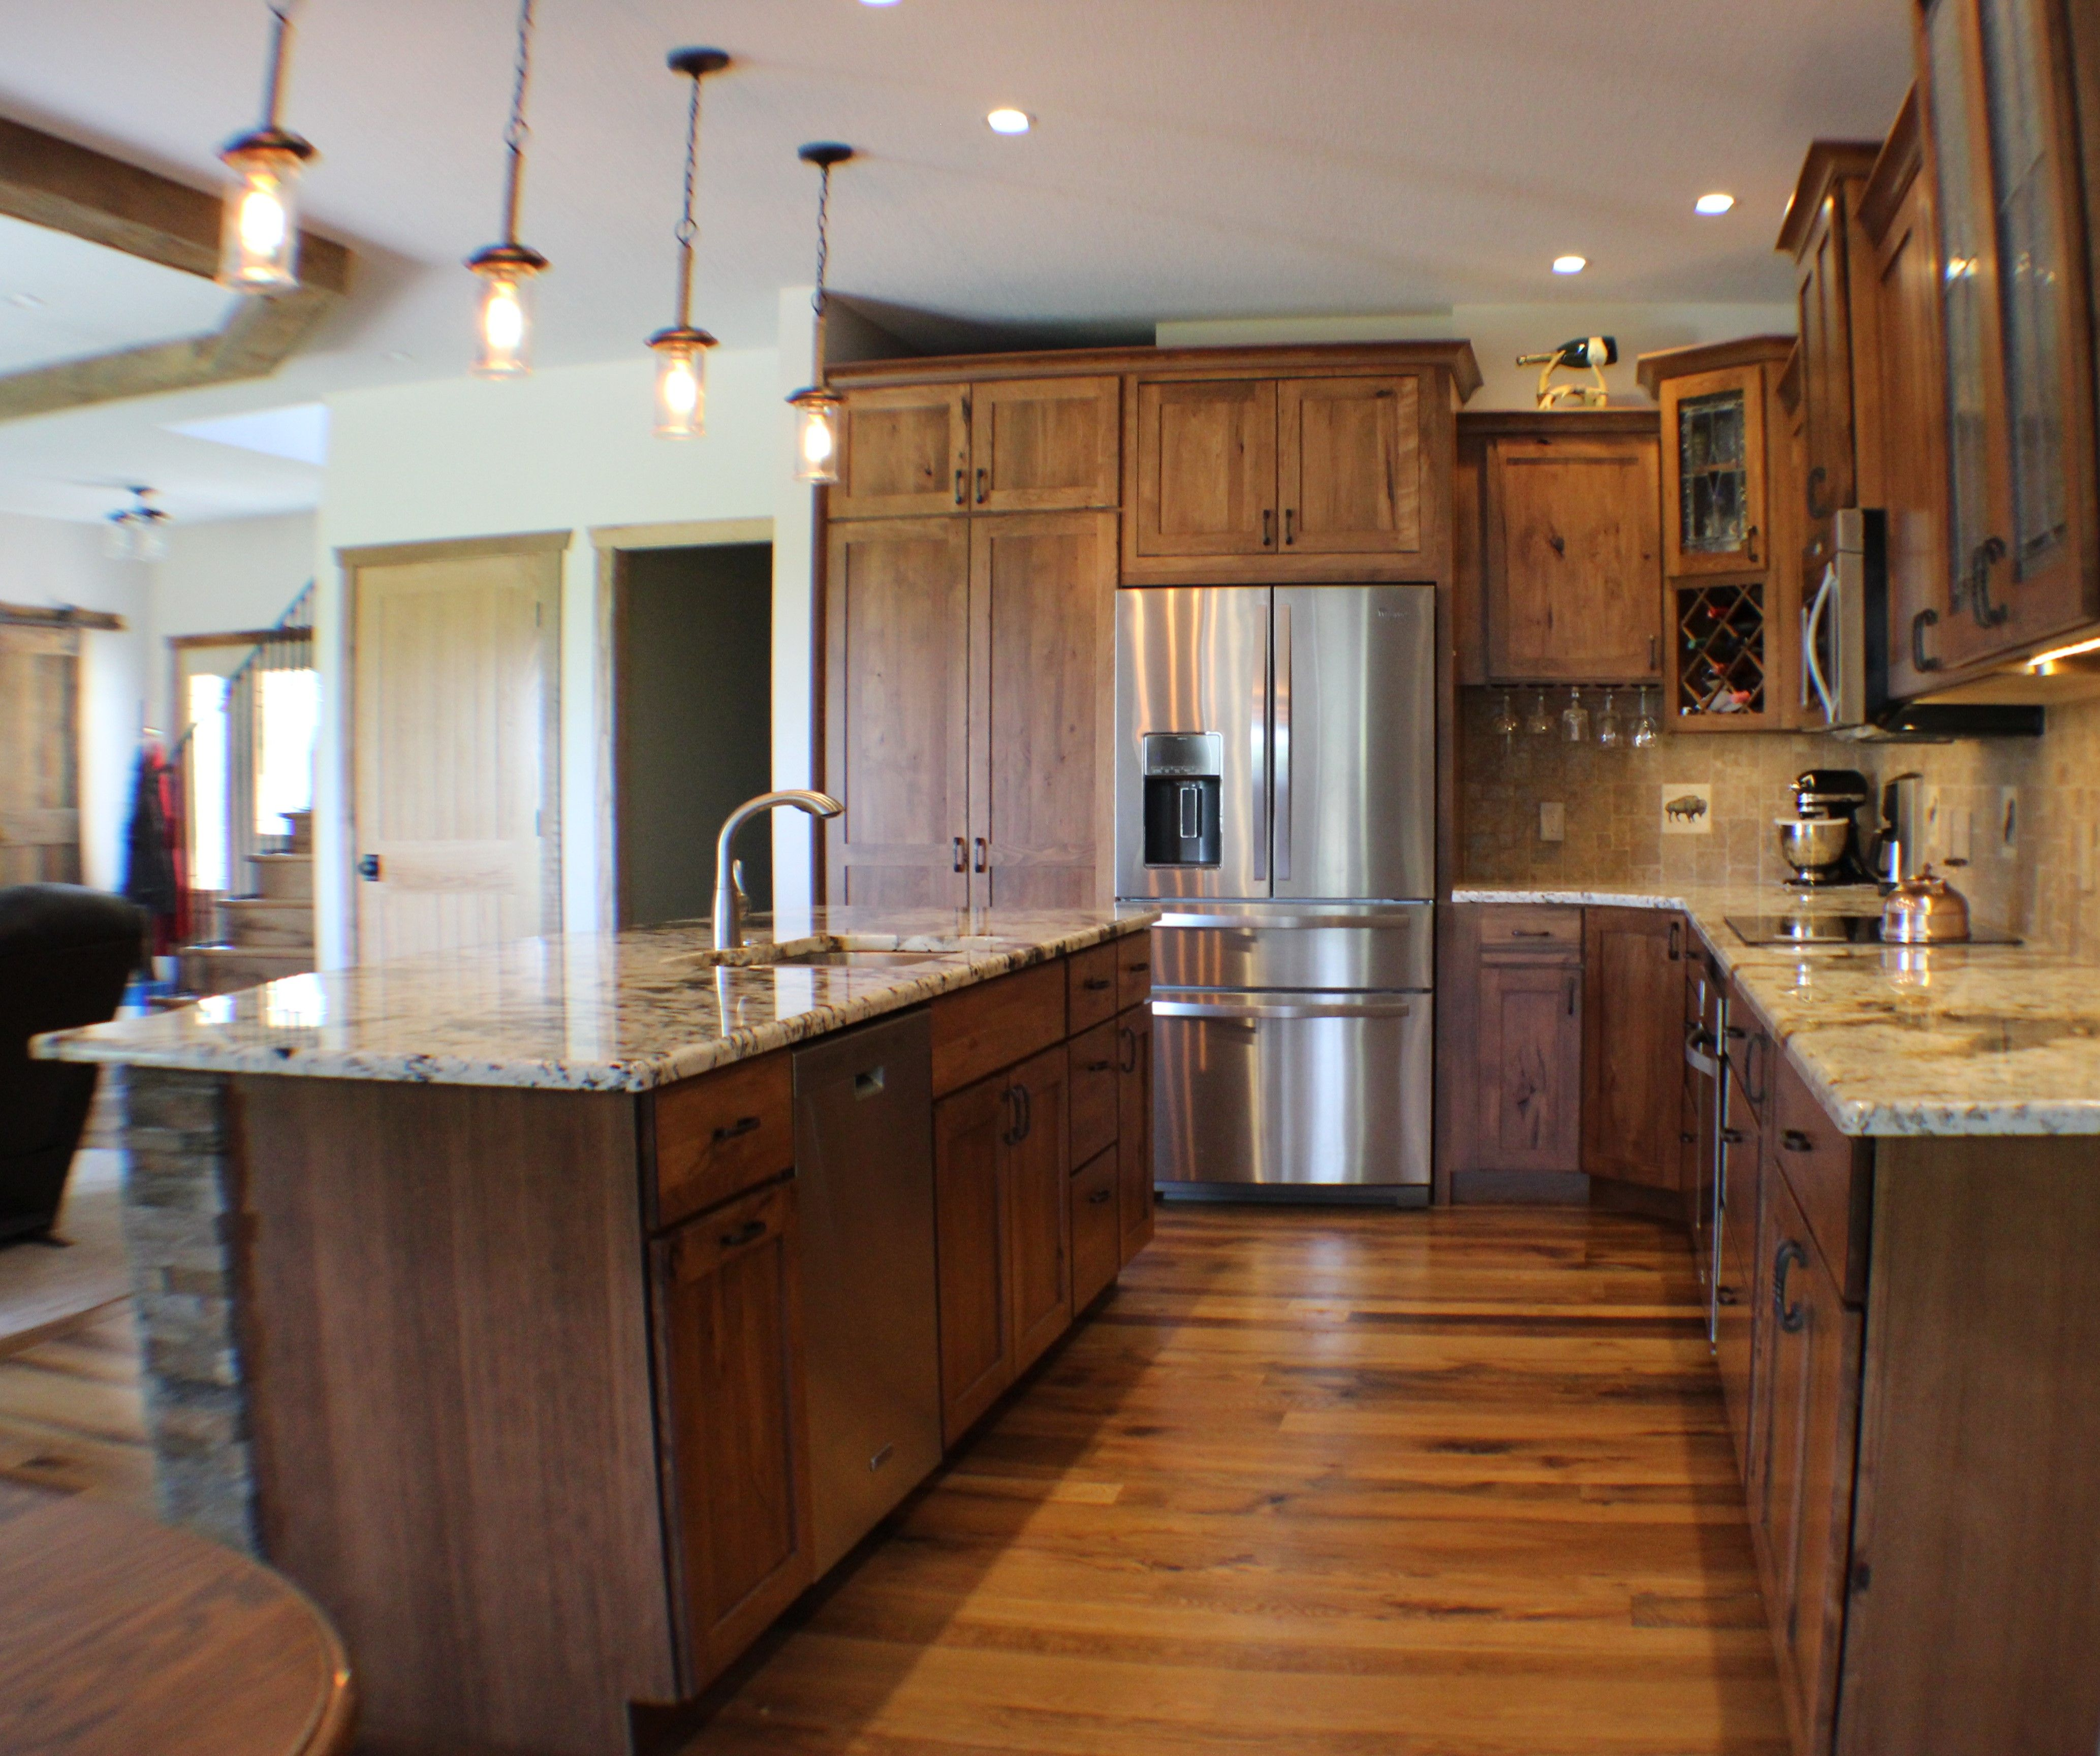 Tour A Full Gallery Of Images From This #rustic #kitchen